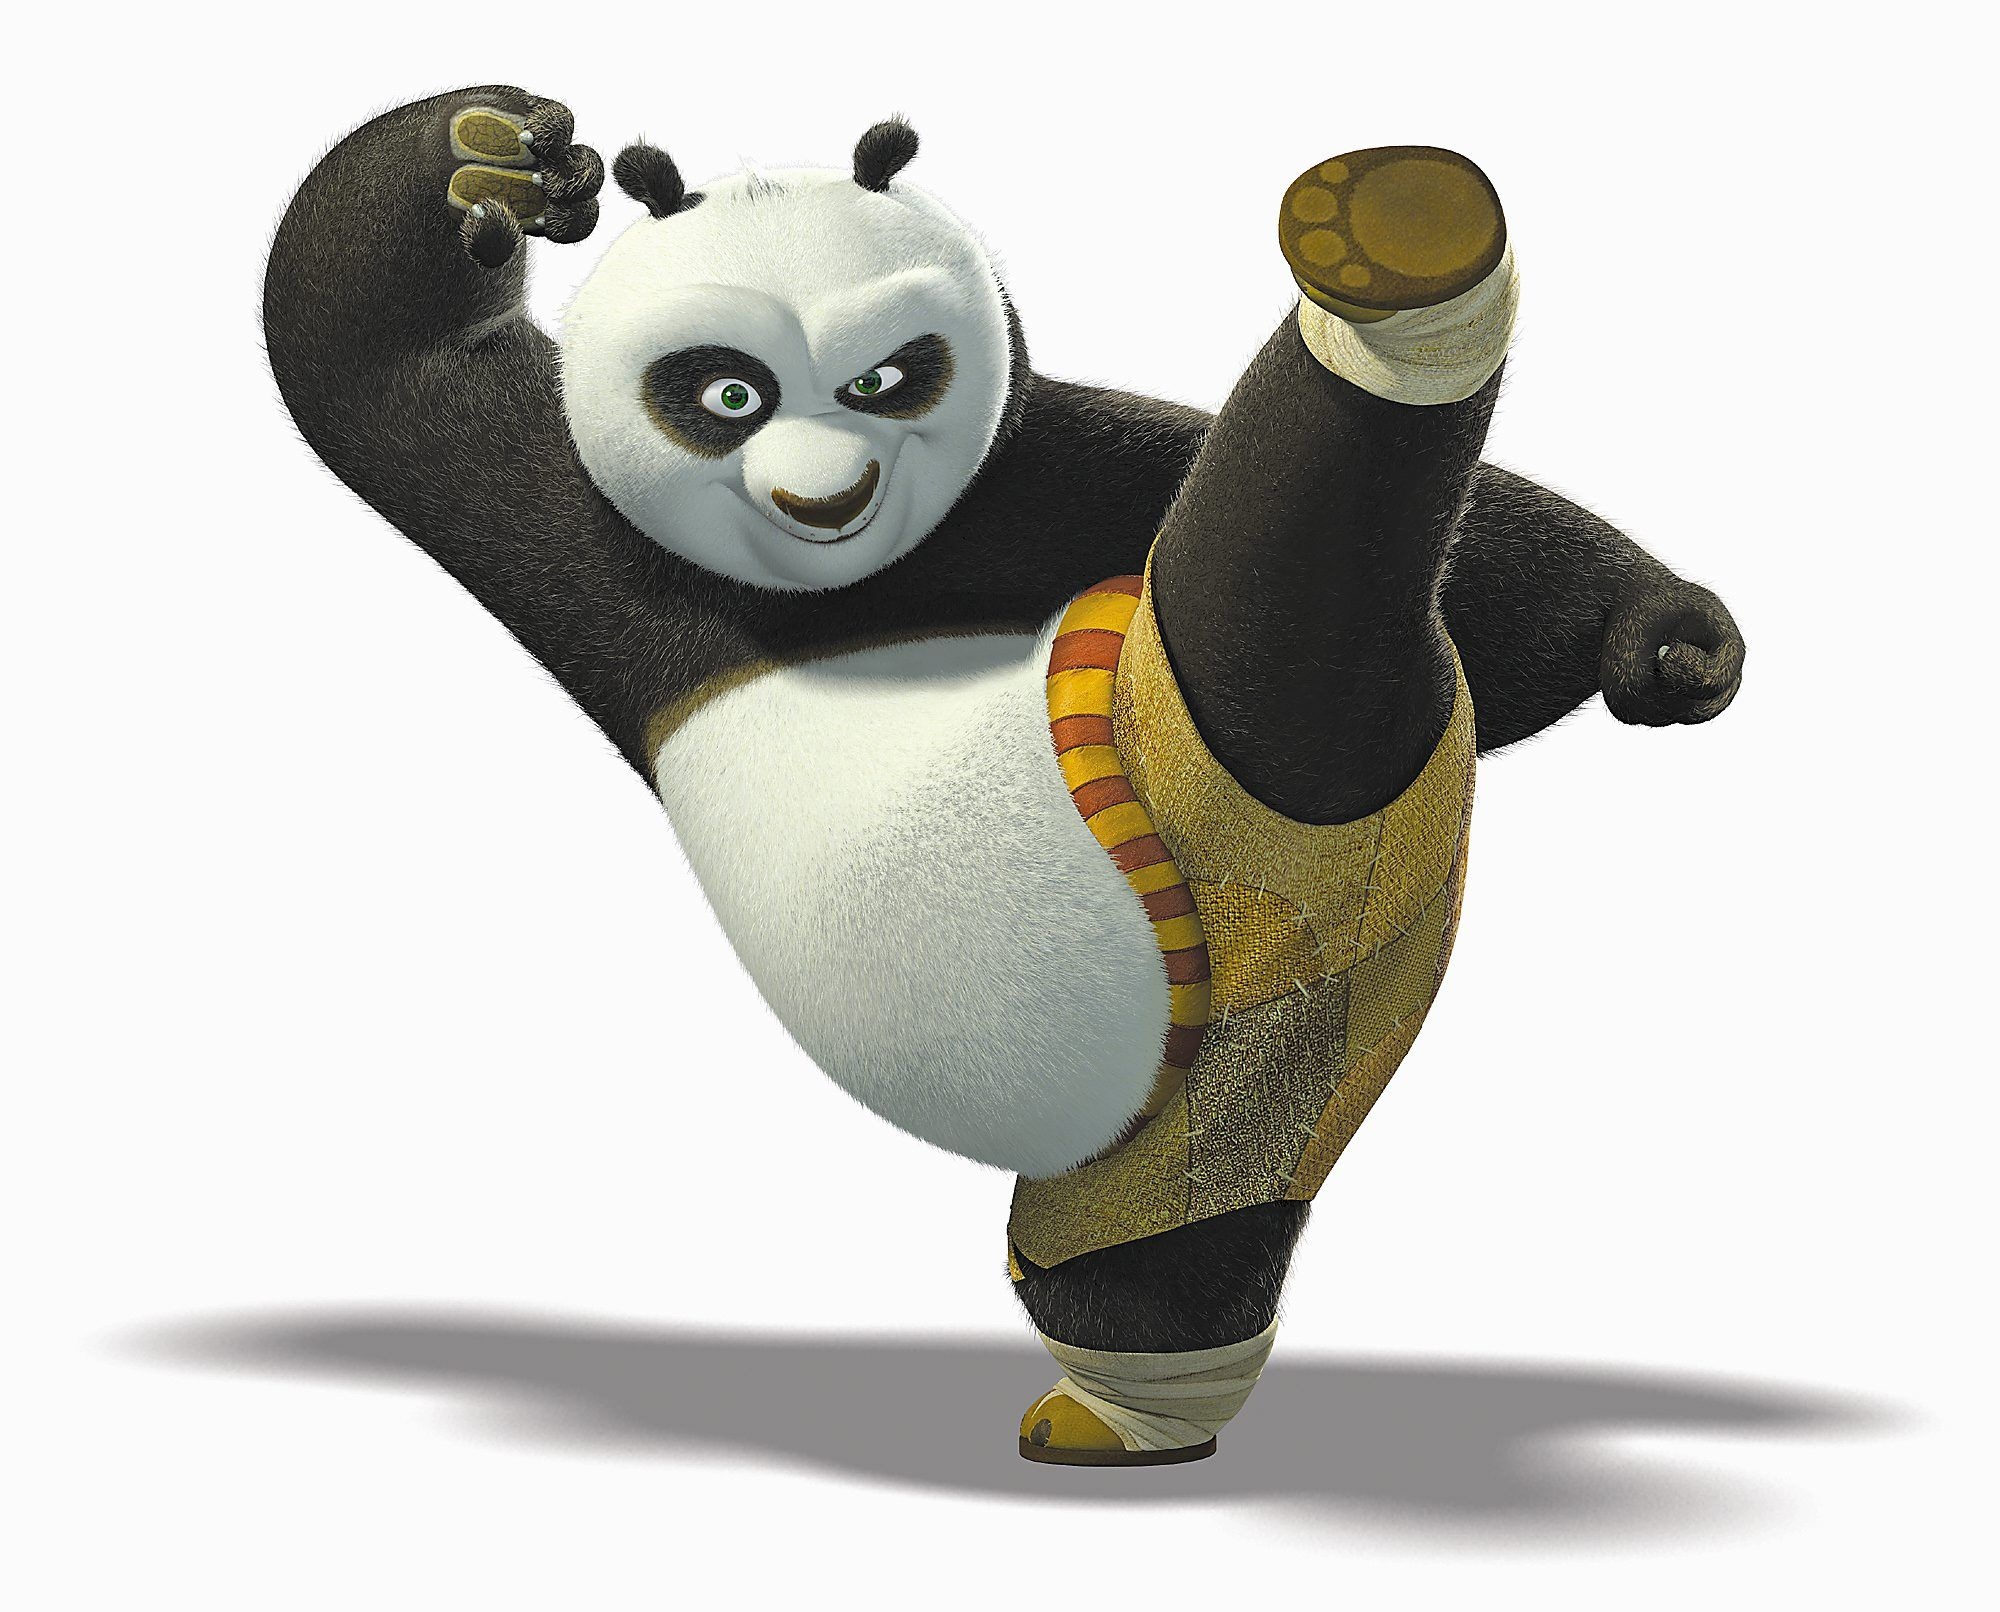 panda fu kung wallpapers kungfu funny cartoons desktop movie hq fight fun backgrounds monkey history tigress past night px conditionals